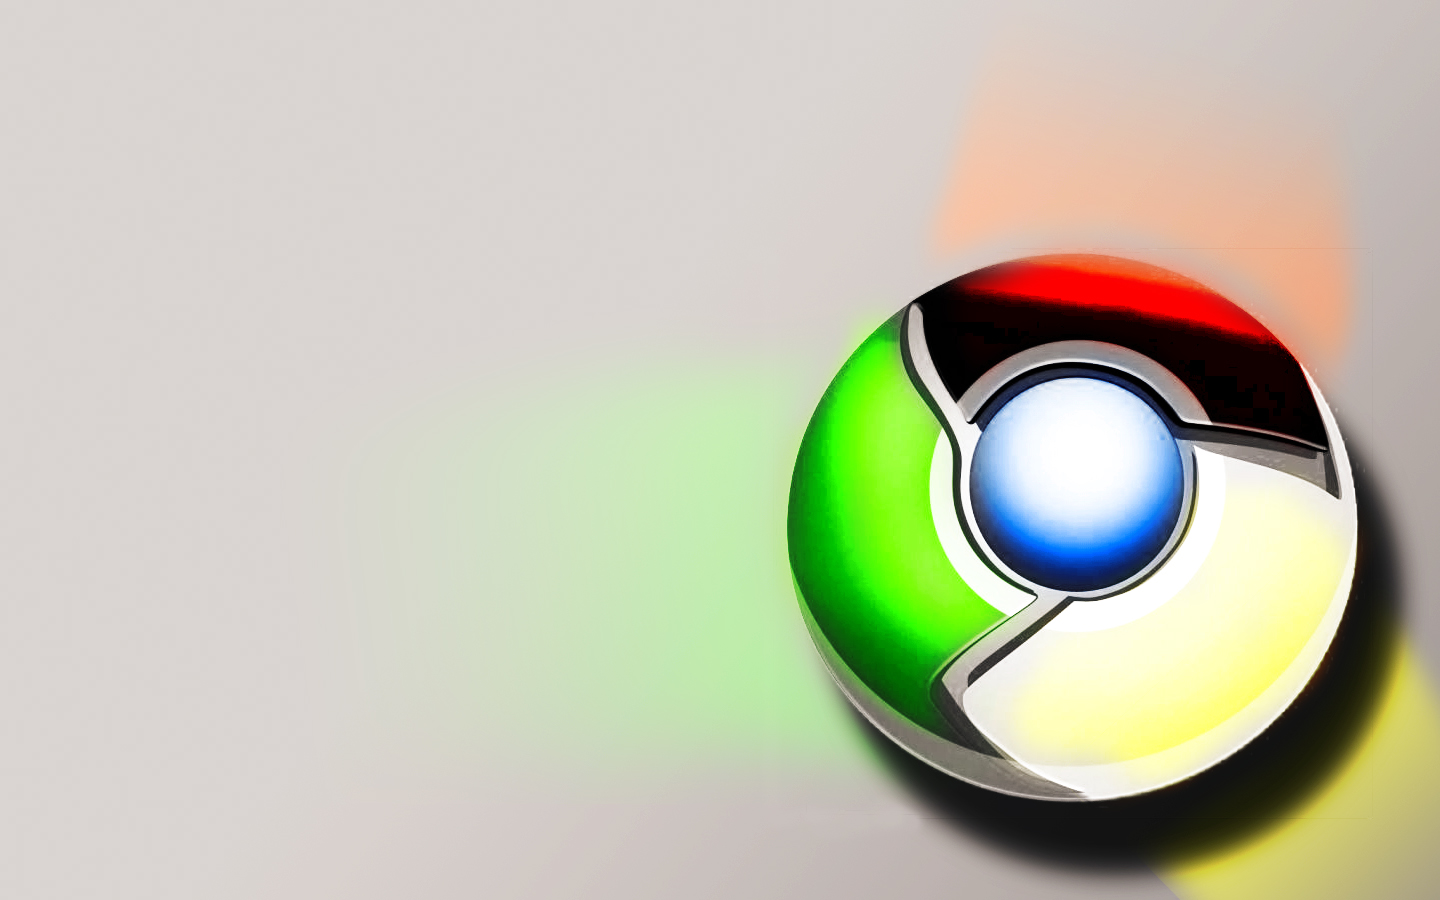 Google Chrome Backgrounds, Google Chrome Desktop Wallpapers ~ Full HD Wallpapers